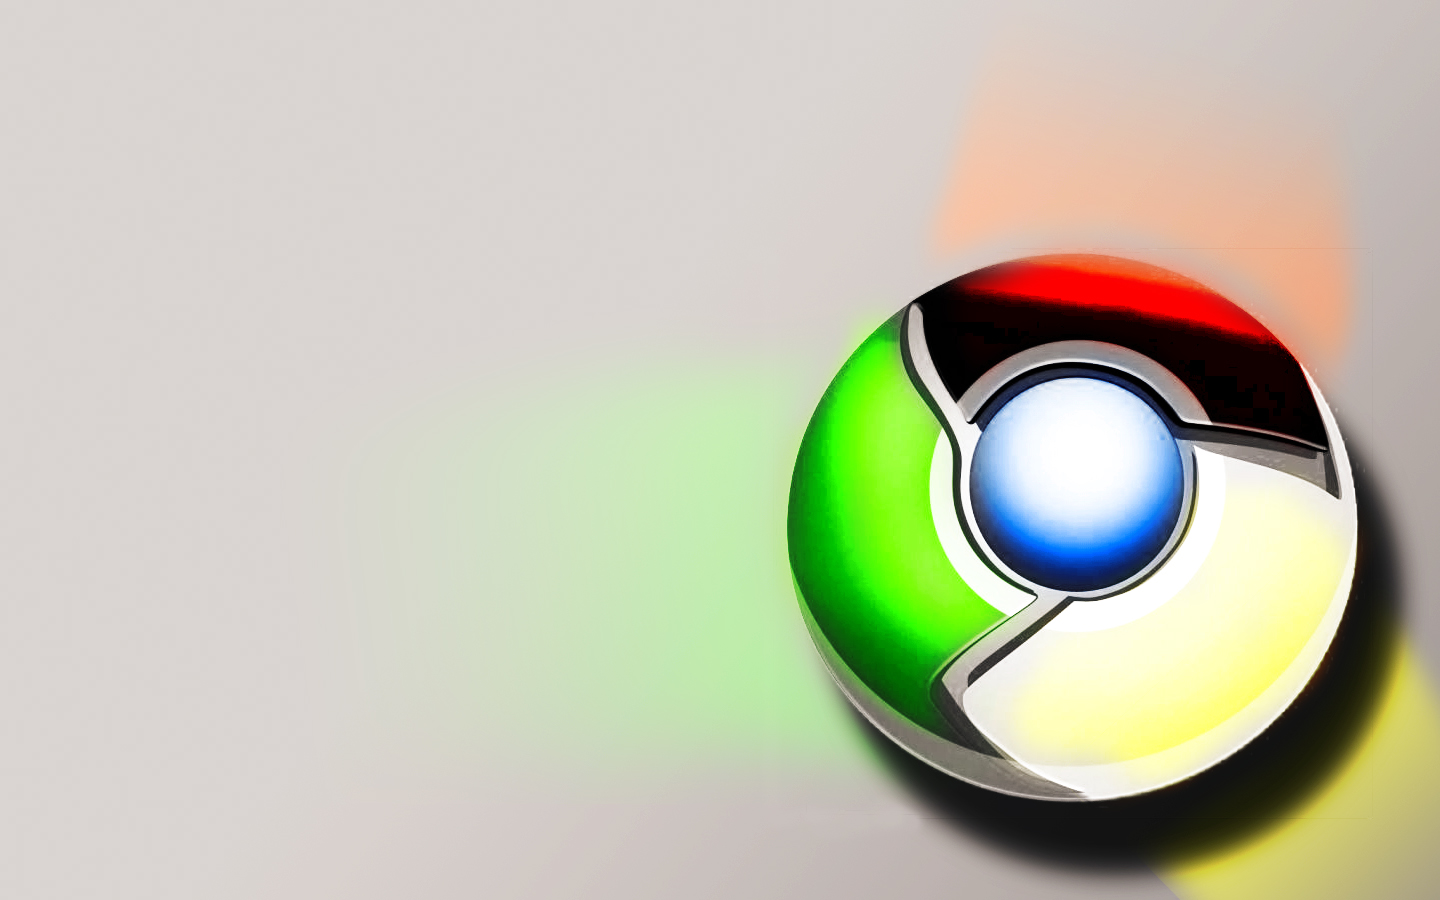 Google Chrome Backgrounds, Google Chrome Desktop Wallpapers ~ Full HD Wallpapers